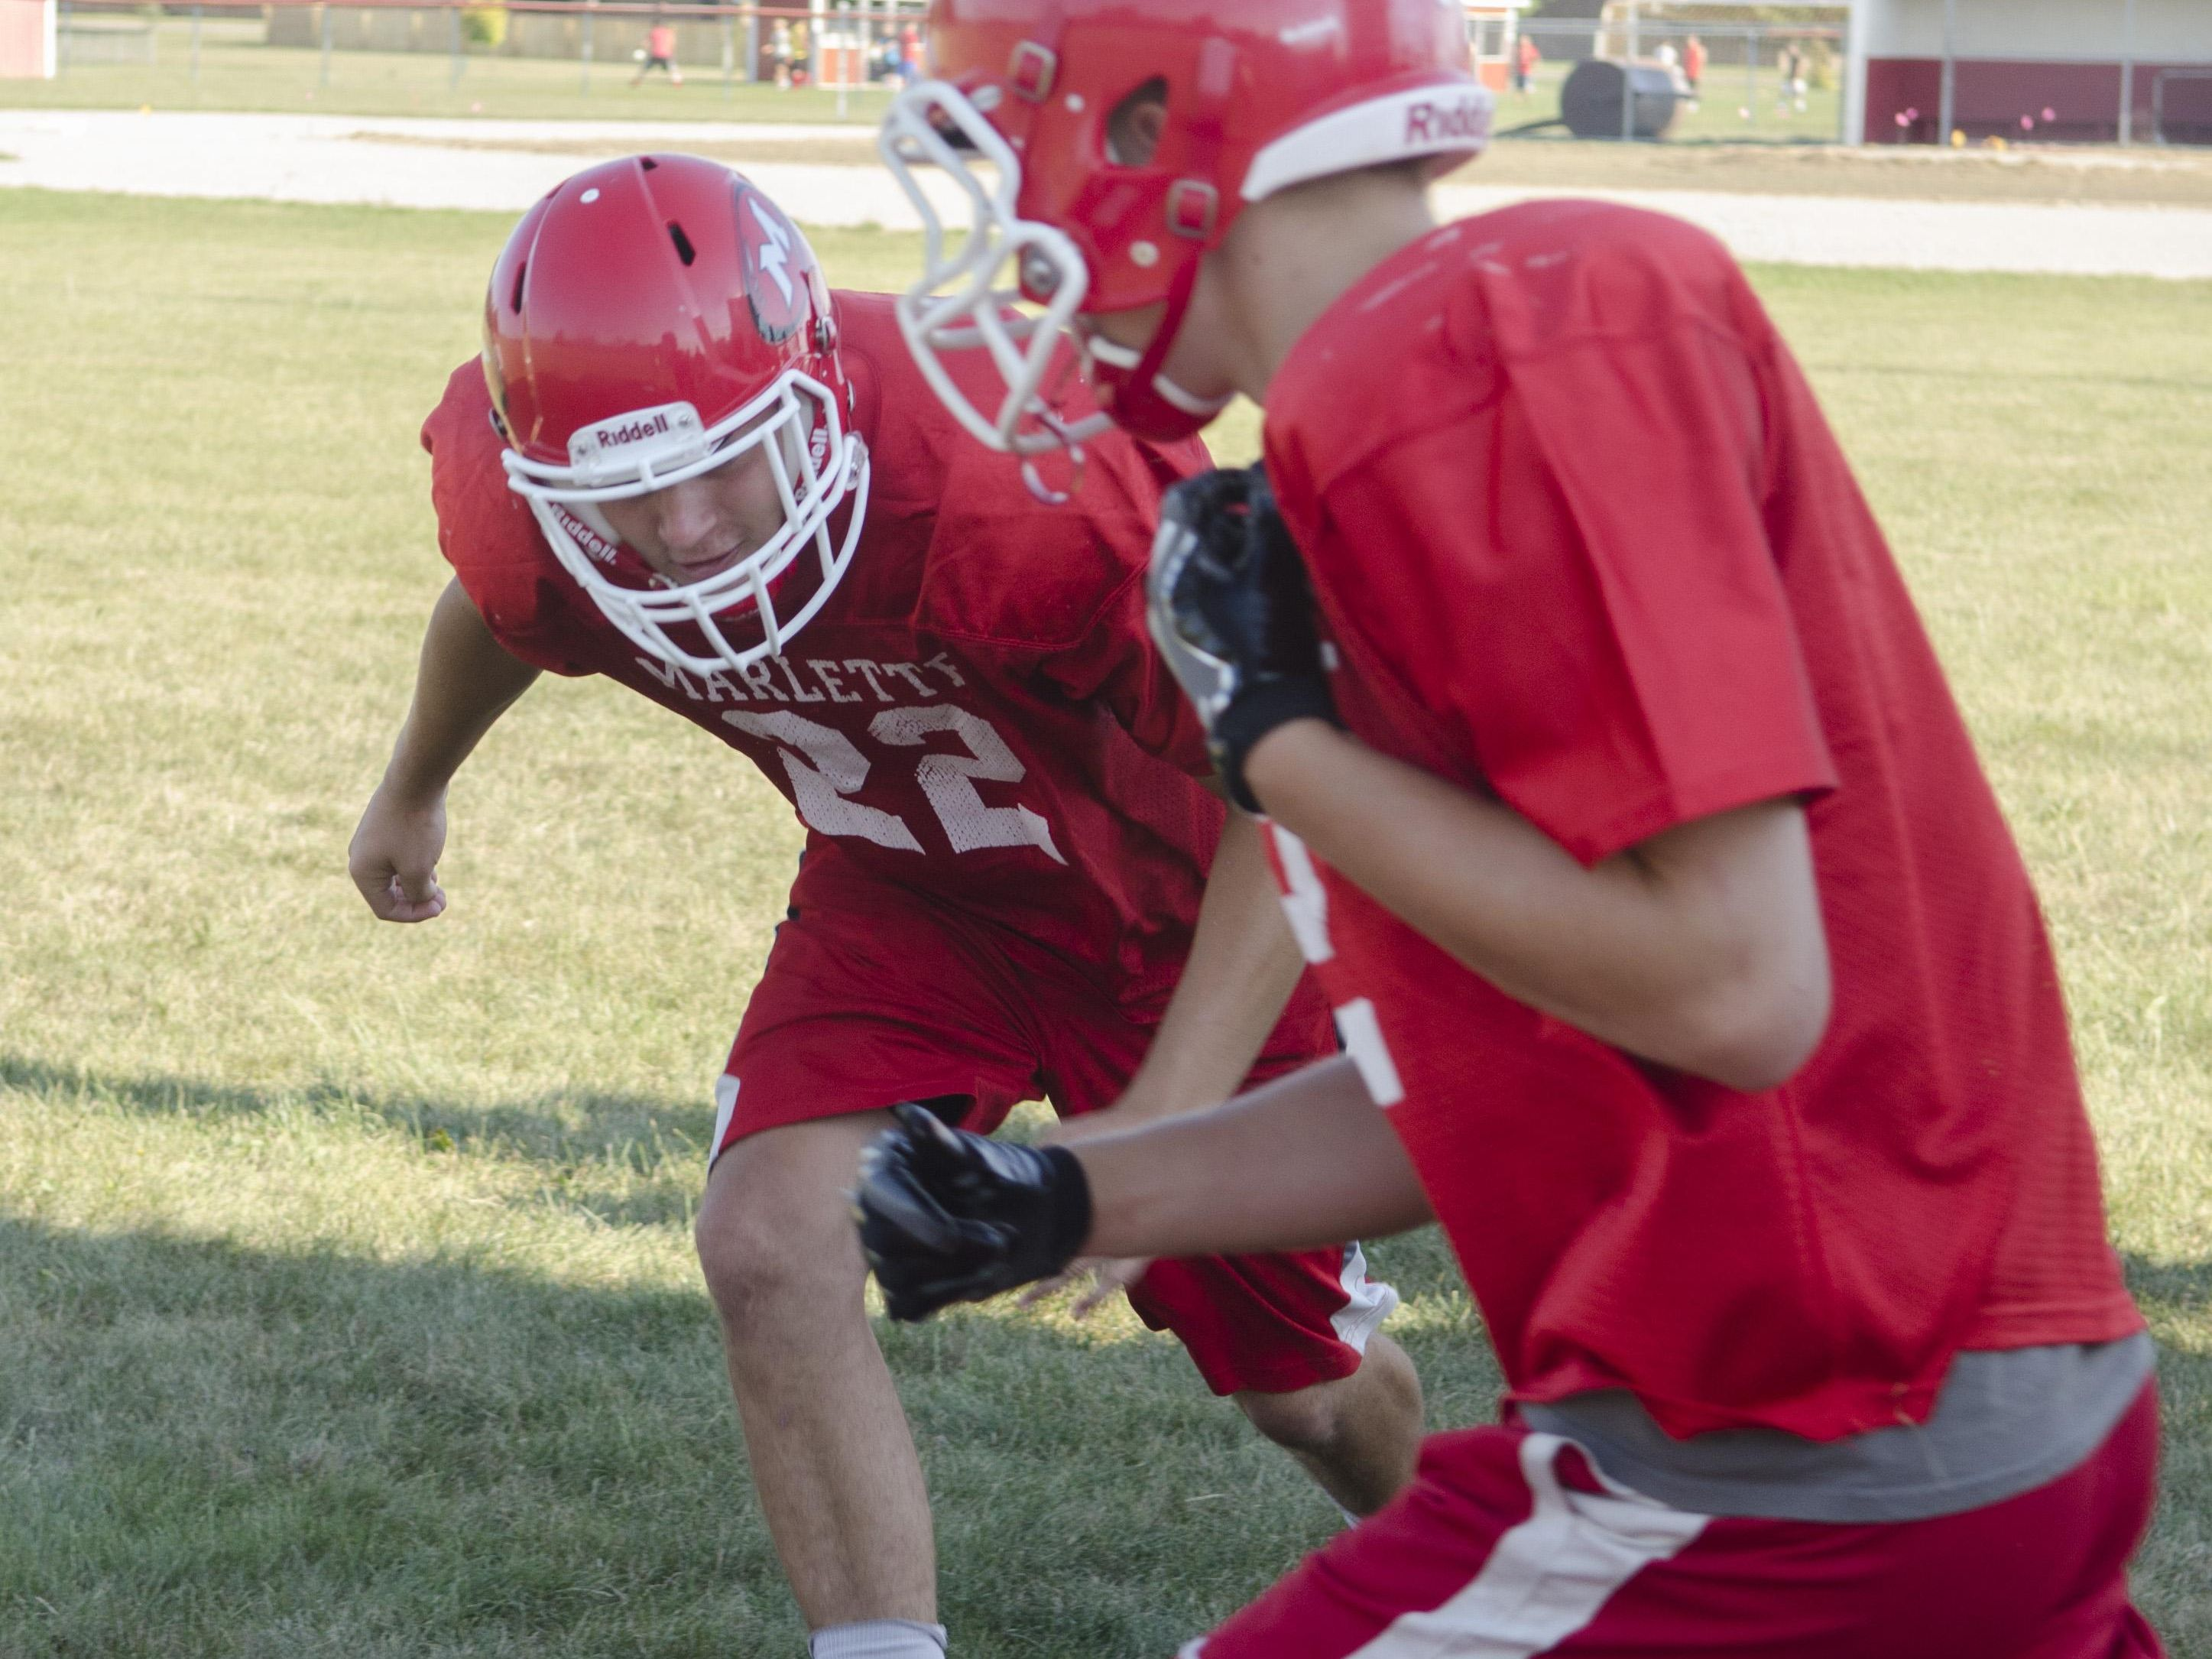 Marlette's Ethan McKenney closes in for a tackle in a tackle drill Wednesday, Aug. 10 , 2016 during their football practice at Marlette High School.